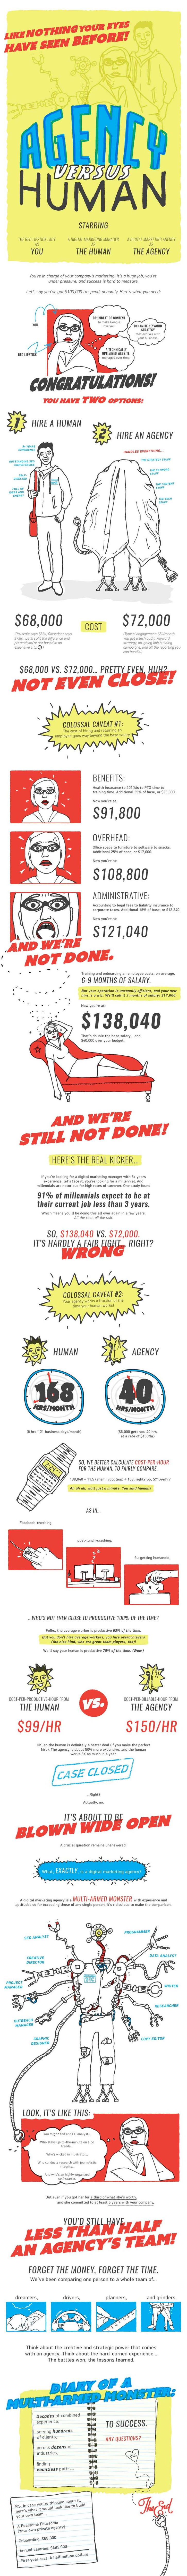 The #Cost of #SEO: Bring It In-House or Use An #Agency? - Do you fancy an infographic?  There are a lot of them online, but if you want your own please visithttp://linfografico.com/en/prices/  Online girano molte infografiche, se ne vuoi realizzare una tutta tua visitahttp://www.linfografico.com/prezzi/